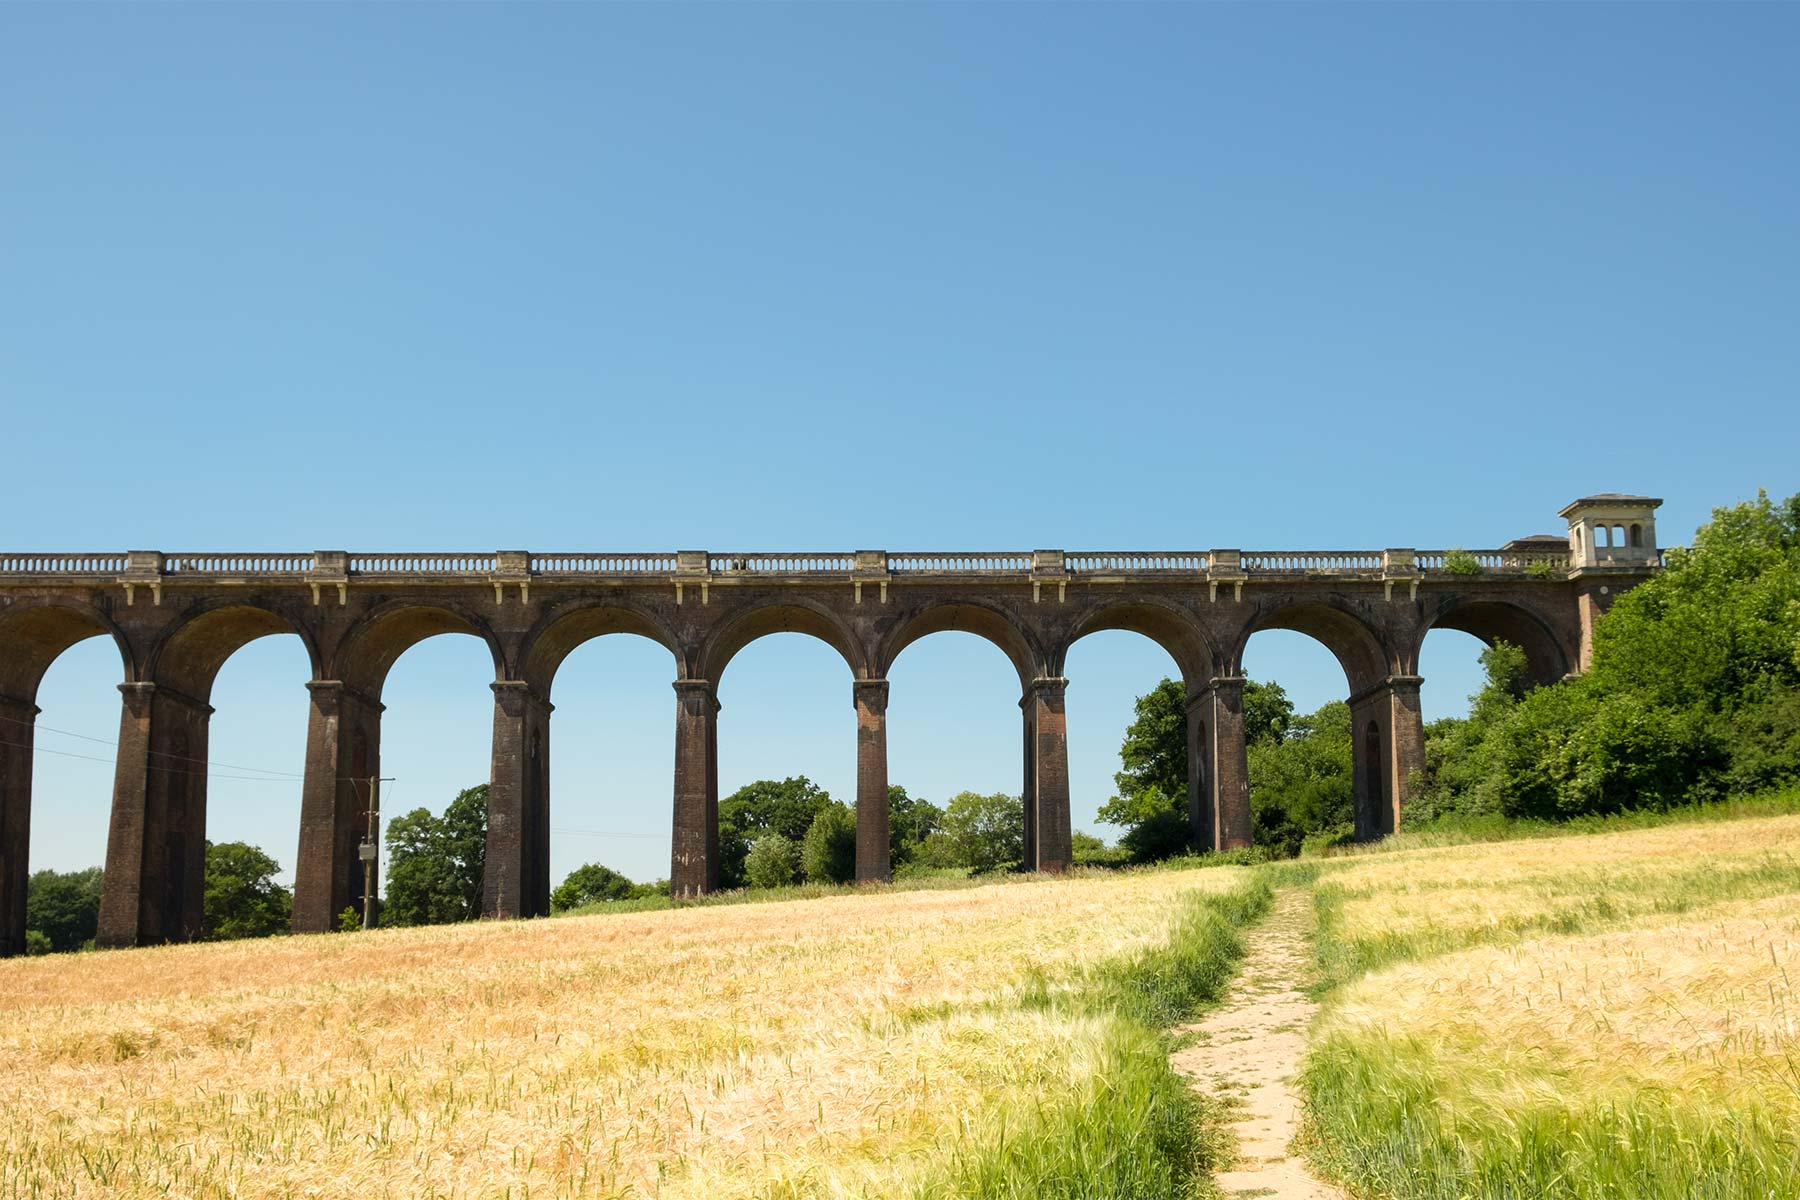 Ouse Valley Viadukt in Sussex, England